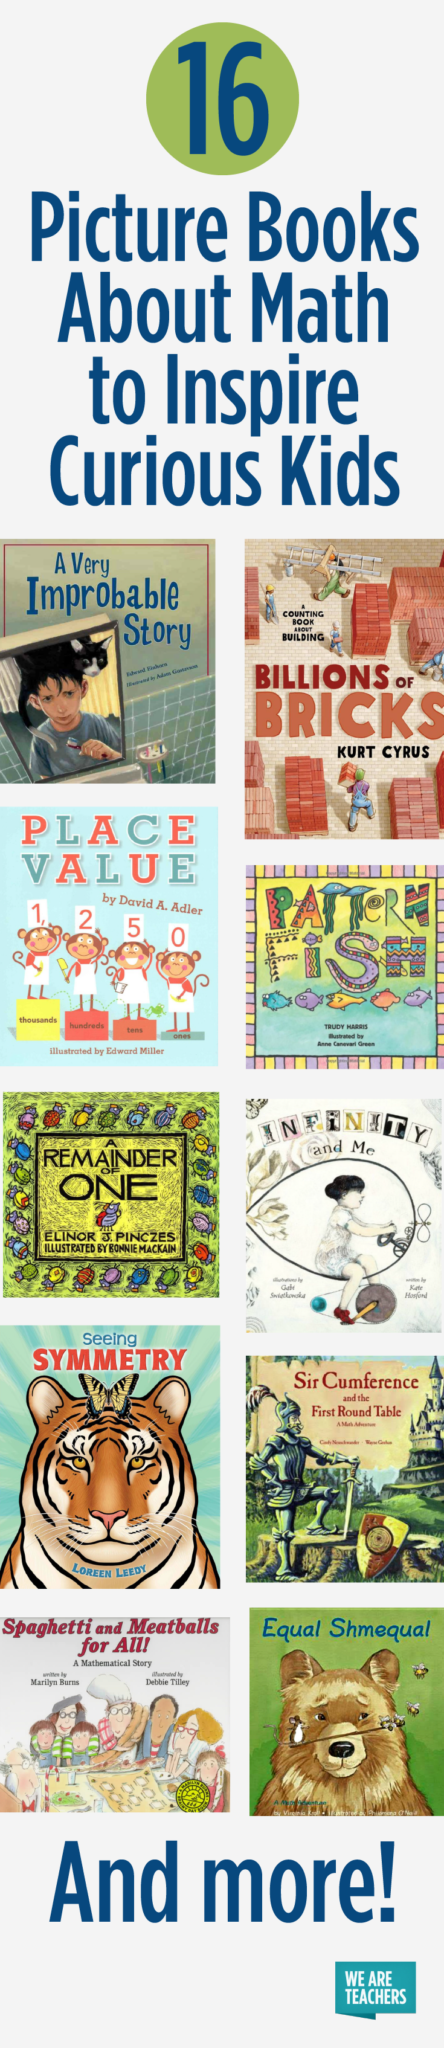 16 Picture Books About Math to Inspire Curious Kids - WeAreTeachers